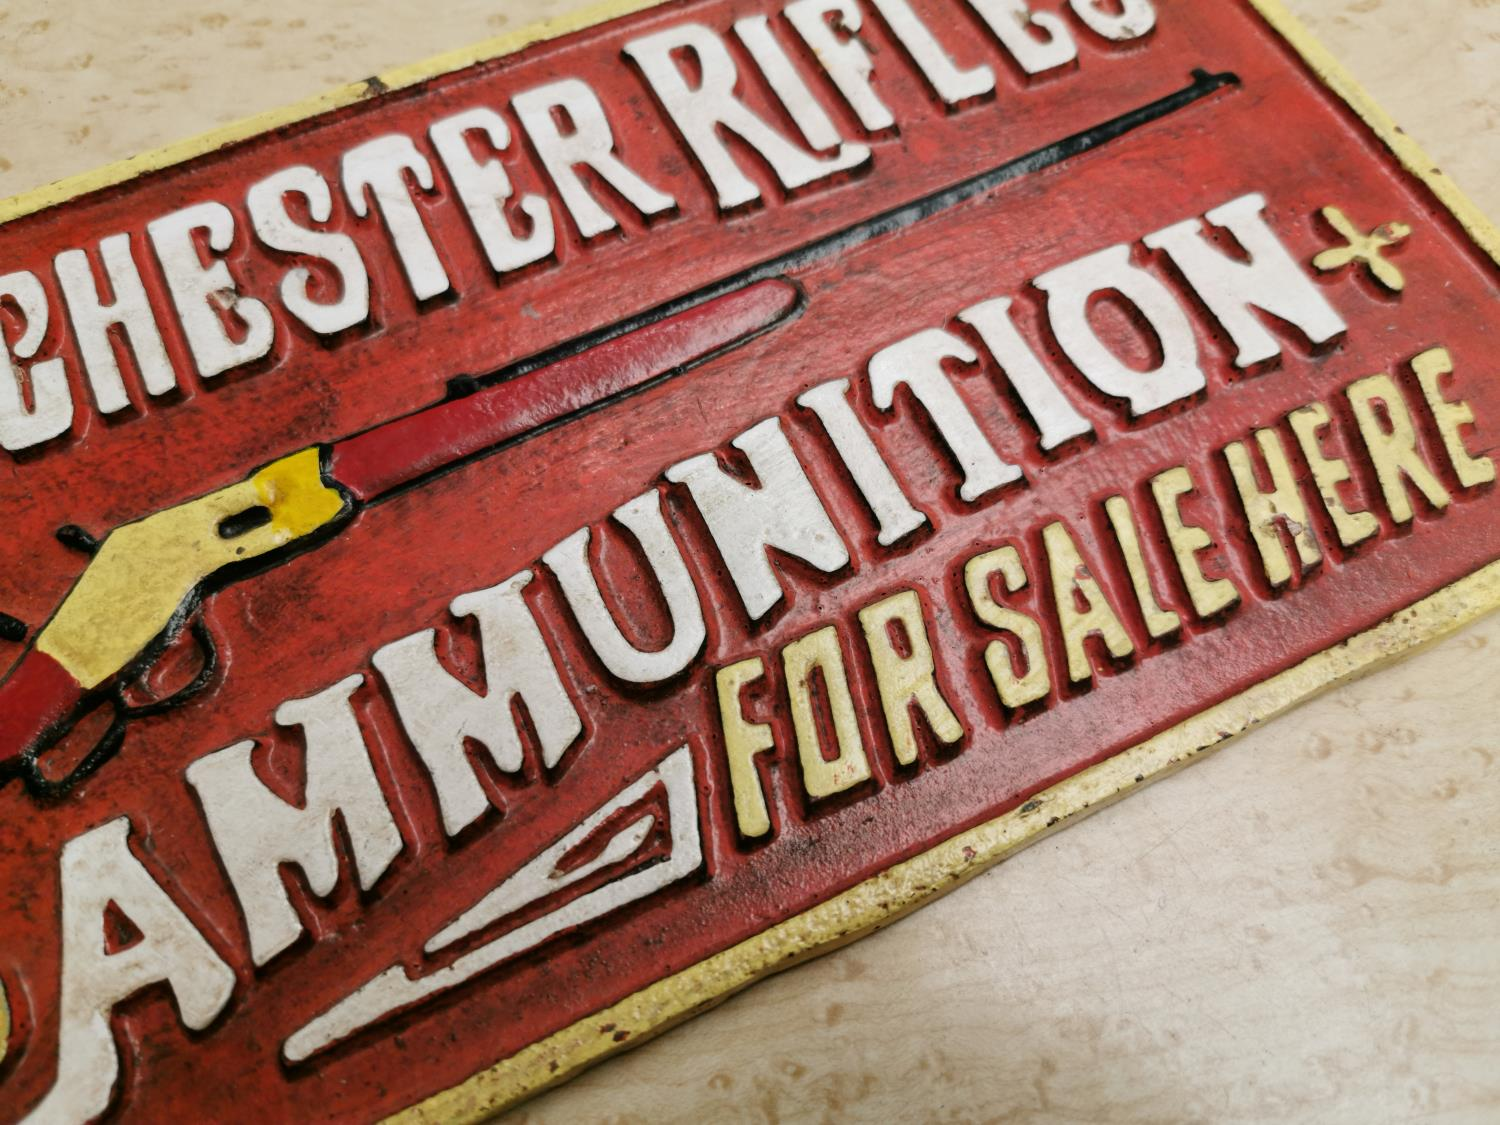 Winchester Rifles advertising sign. - Image 2 of 2